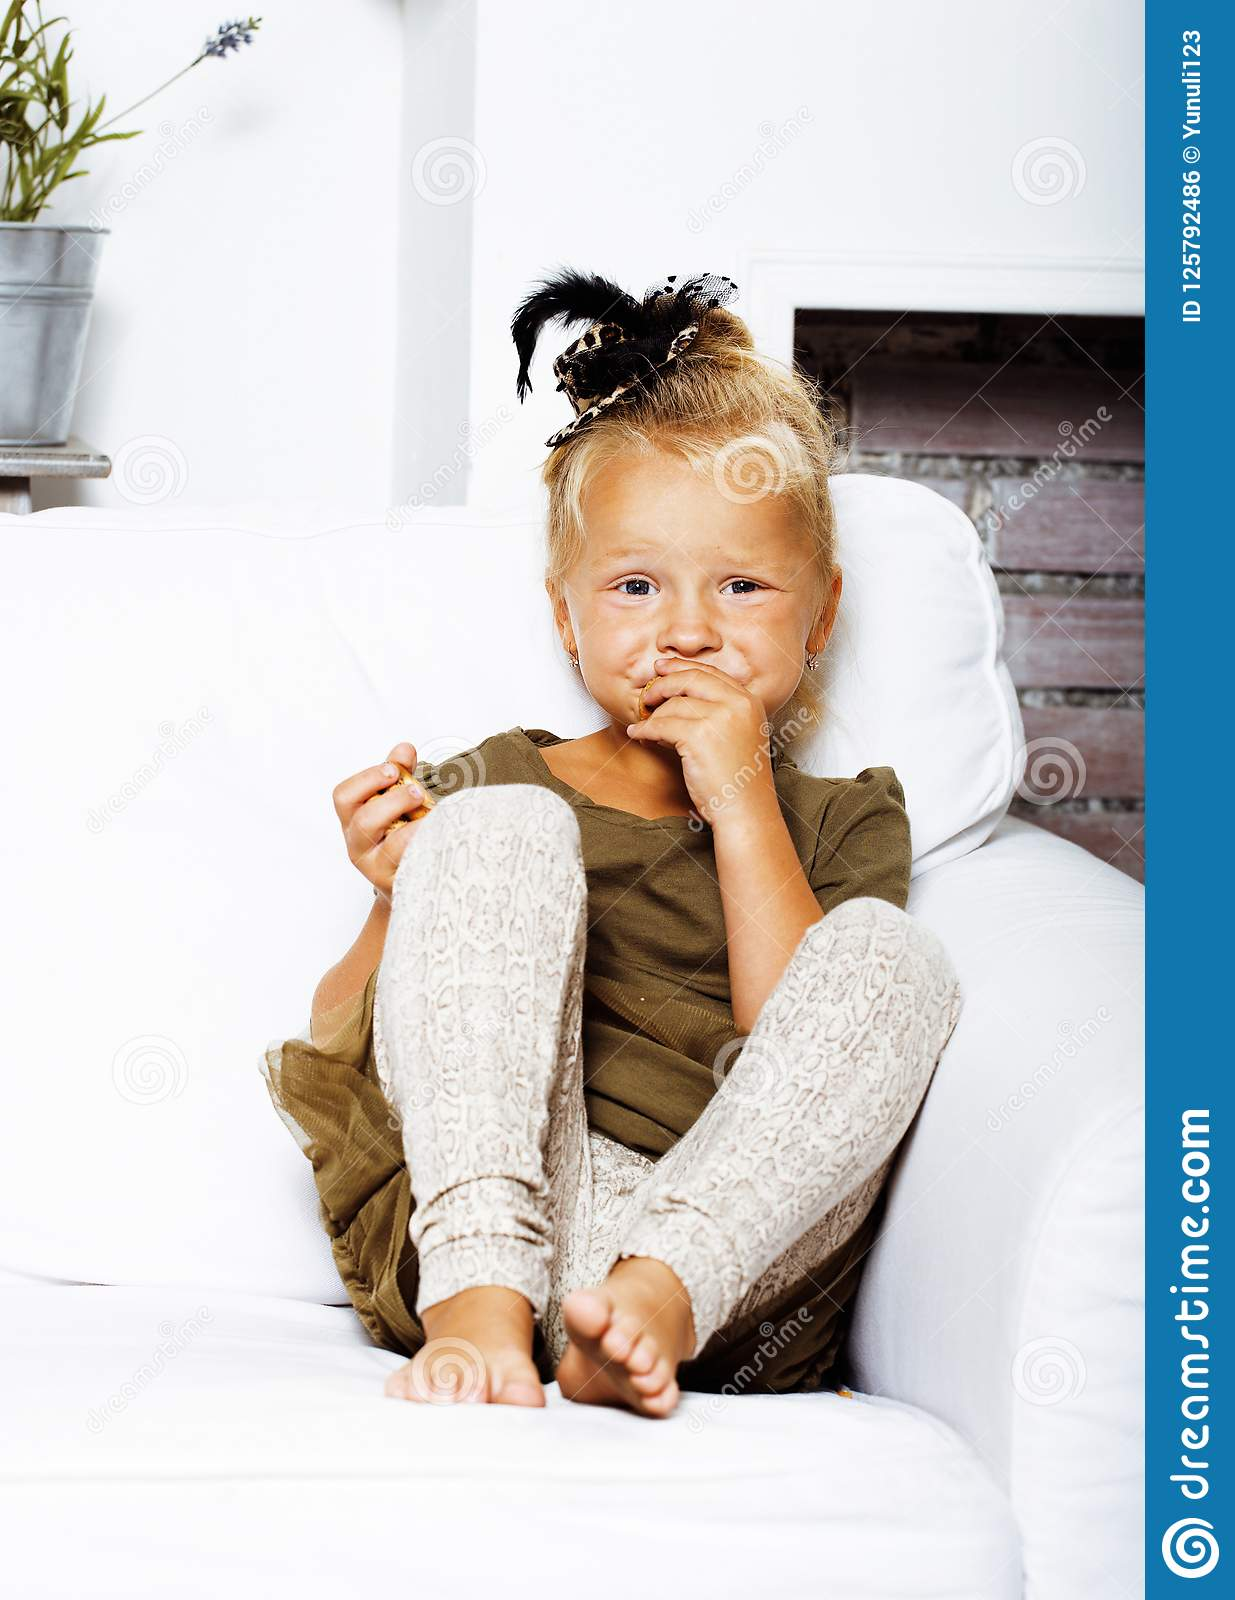 Little cute blond girl at home interior happy smiling close up,